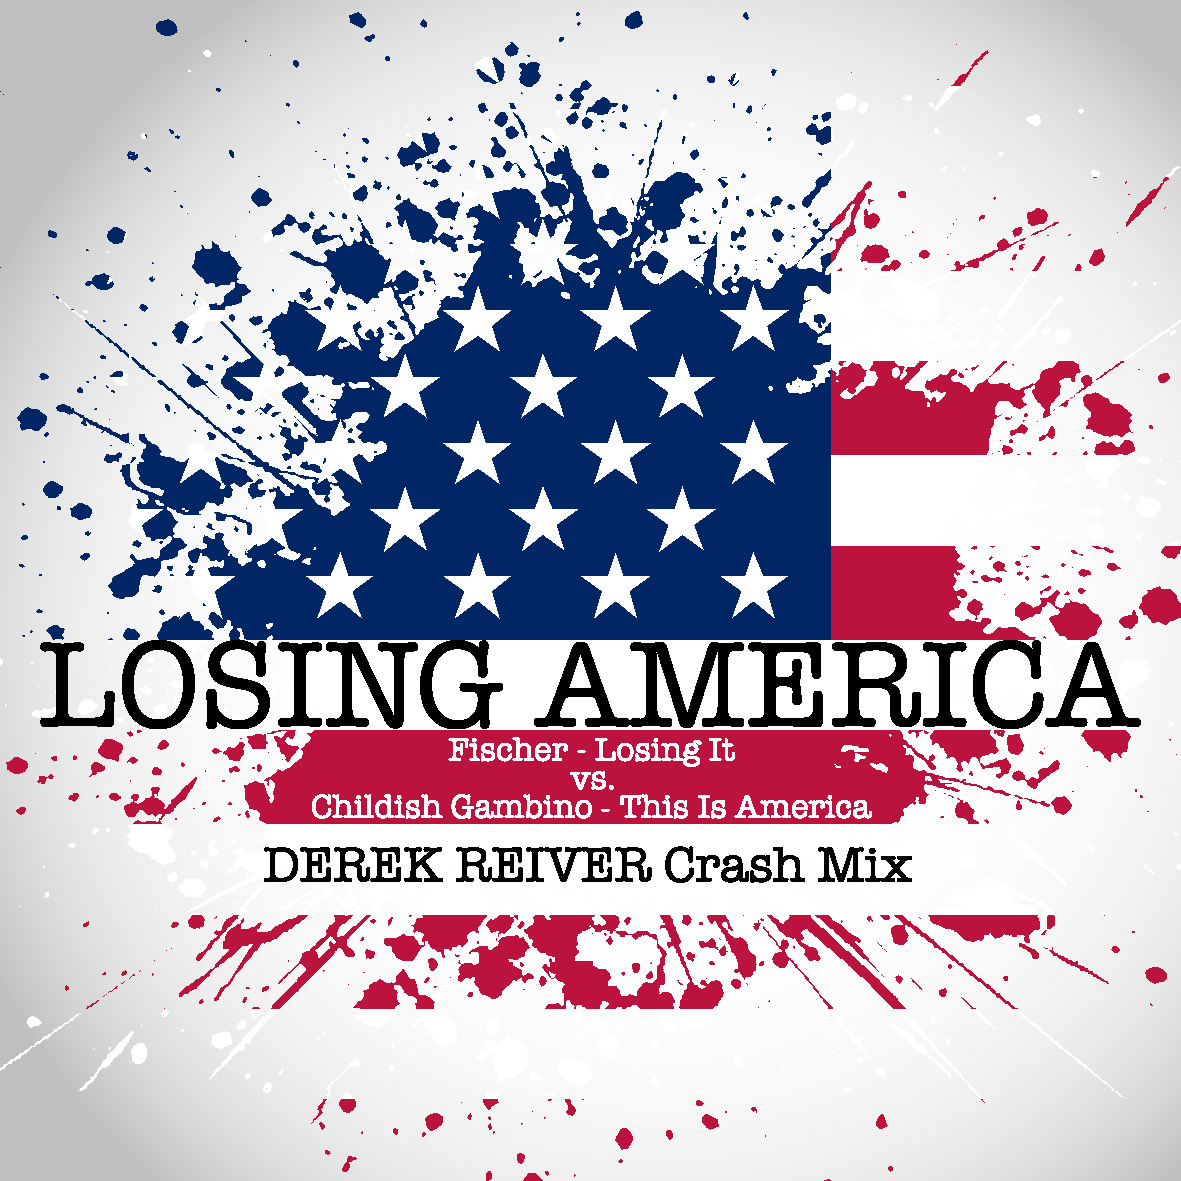 Losing America - DEREK REIVER Crash Mix